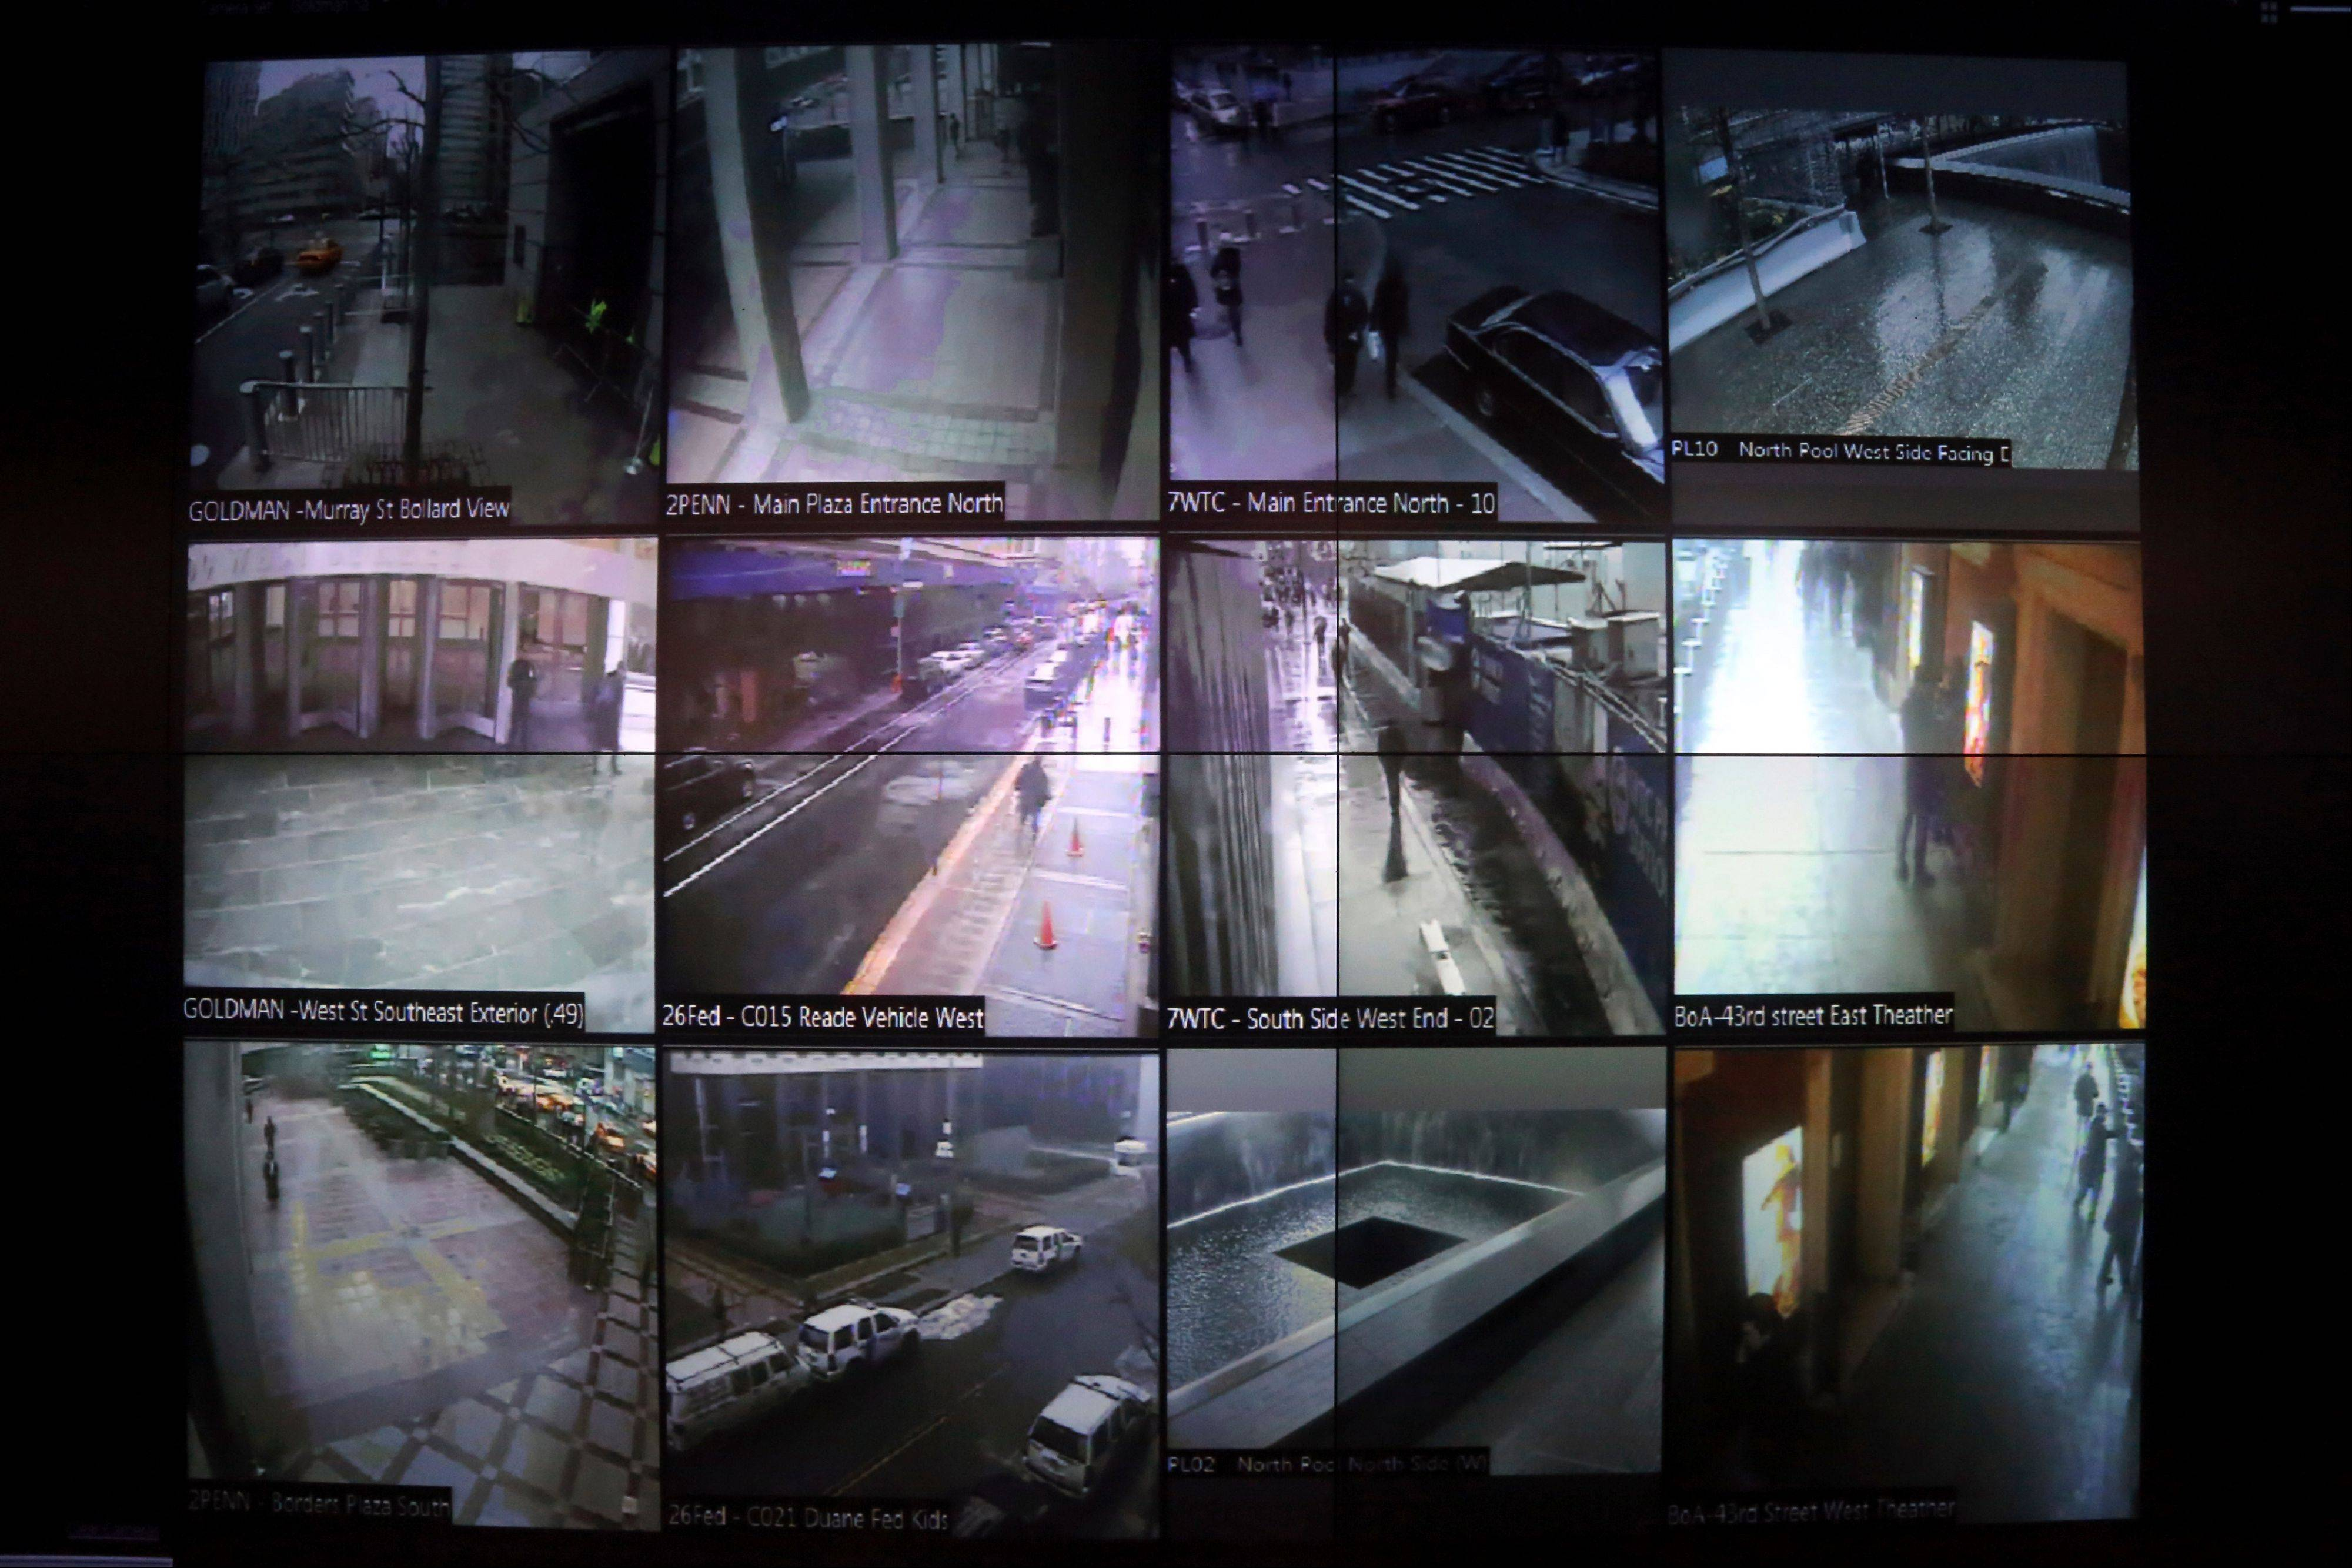 A video wall that shows New York city police officers an interactive map of the area, security footage from nearby cameras, locations where high radiation levels are detected and whether any other threats have been made in New York.